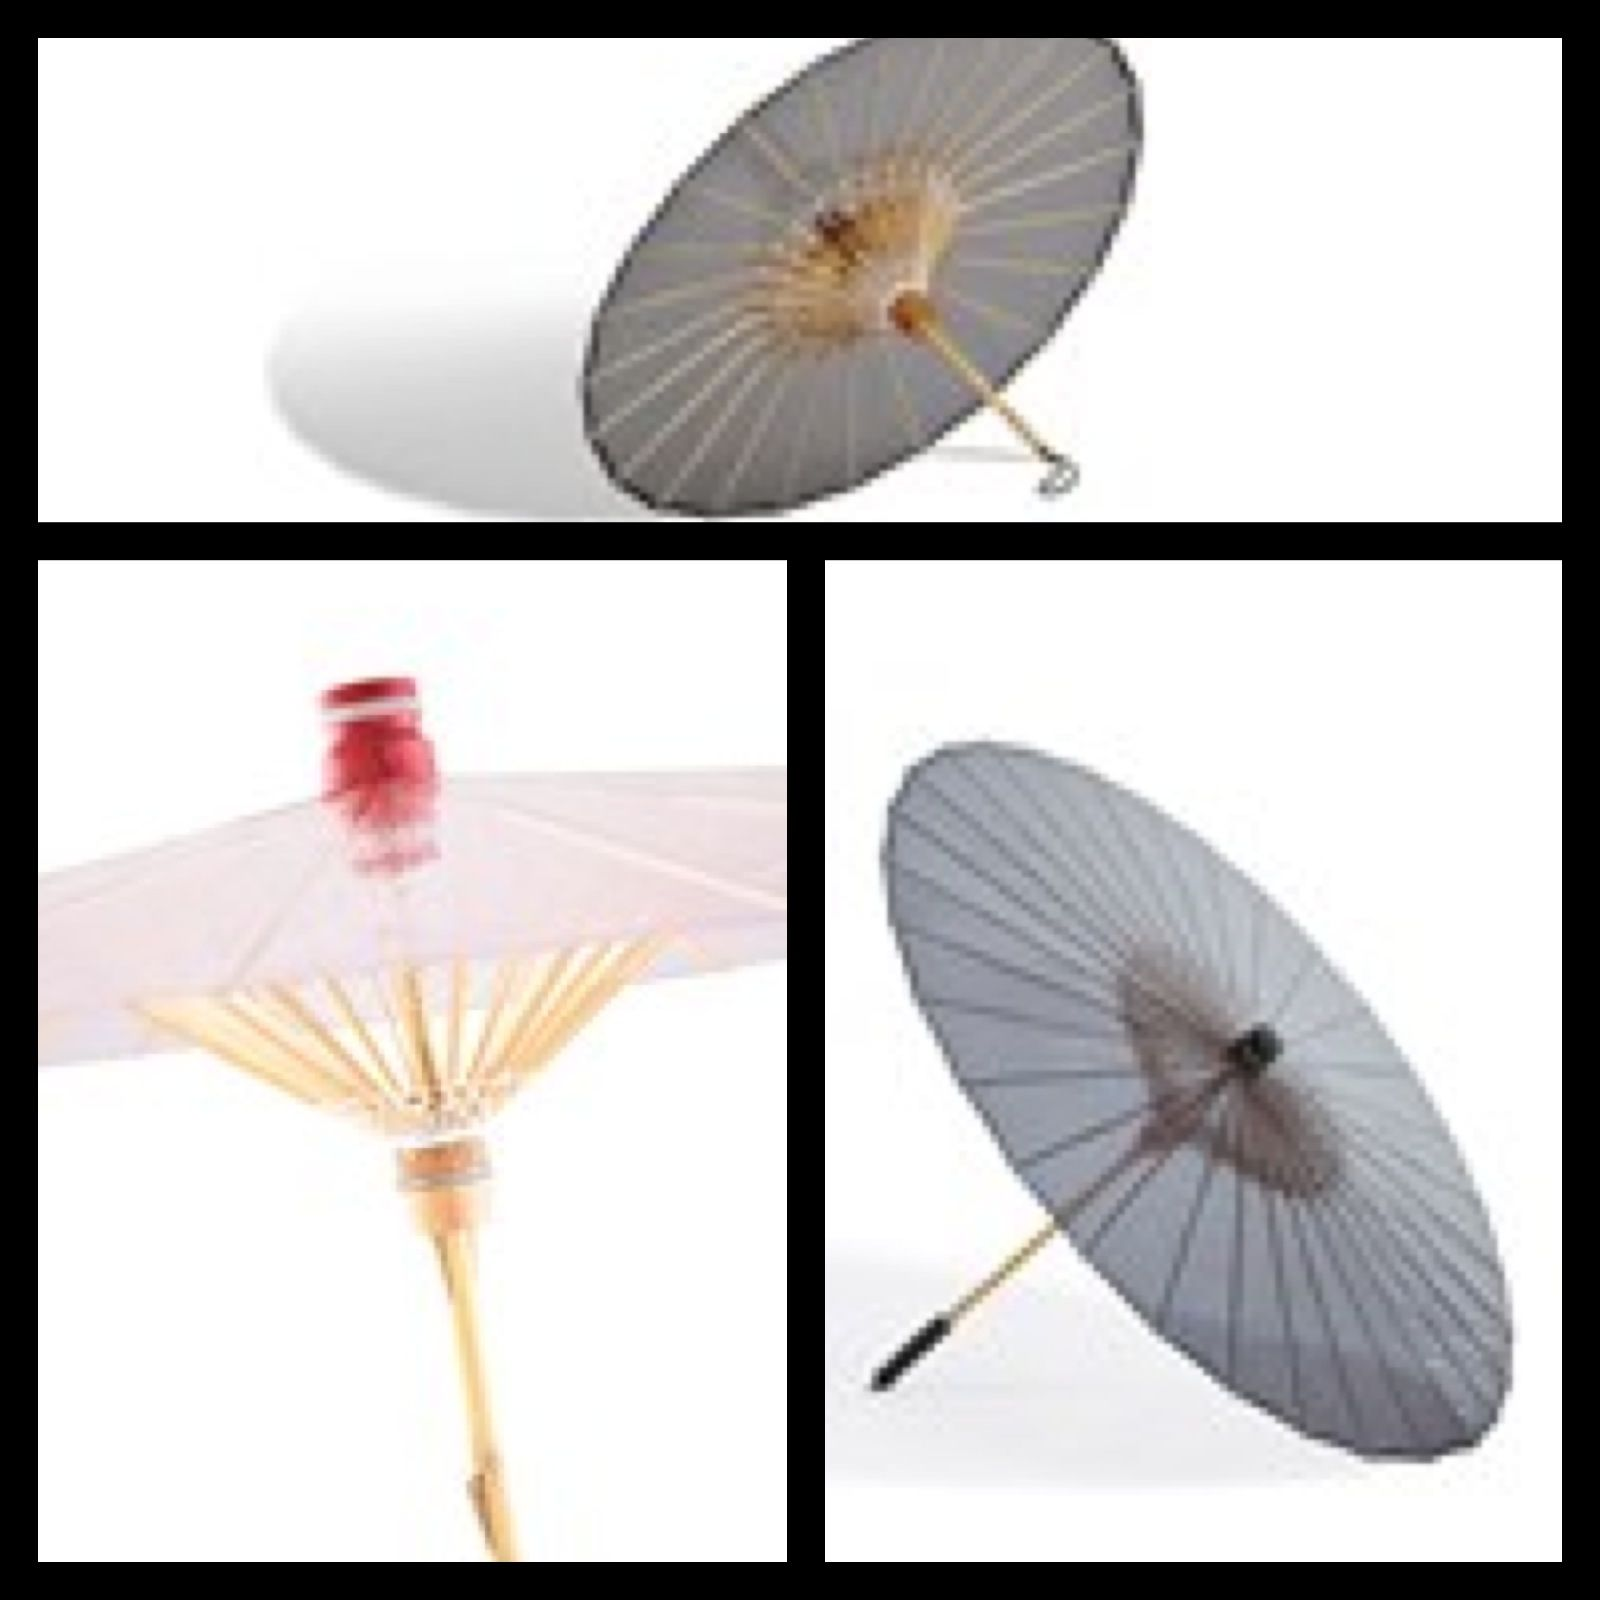 The Brelli www.thebrelli.com umbrella:  the grey brief Brelli perfect for the AZ sun & portable in case of sudden showers.  The pink bling collection with Swarovski crystals perfect for the girl who likes to be fashionable no matter what the weather.  Per The BRELLI:  is the perfect luxury eco-friendly umbrella.  The BRELLI's transparent canopy provides superior protection from the sun (it provides 99% UVA/UVB/UVC protection), rain and can withstand winds up to 40 mph.  Beautiful and…